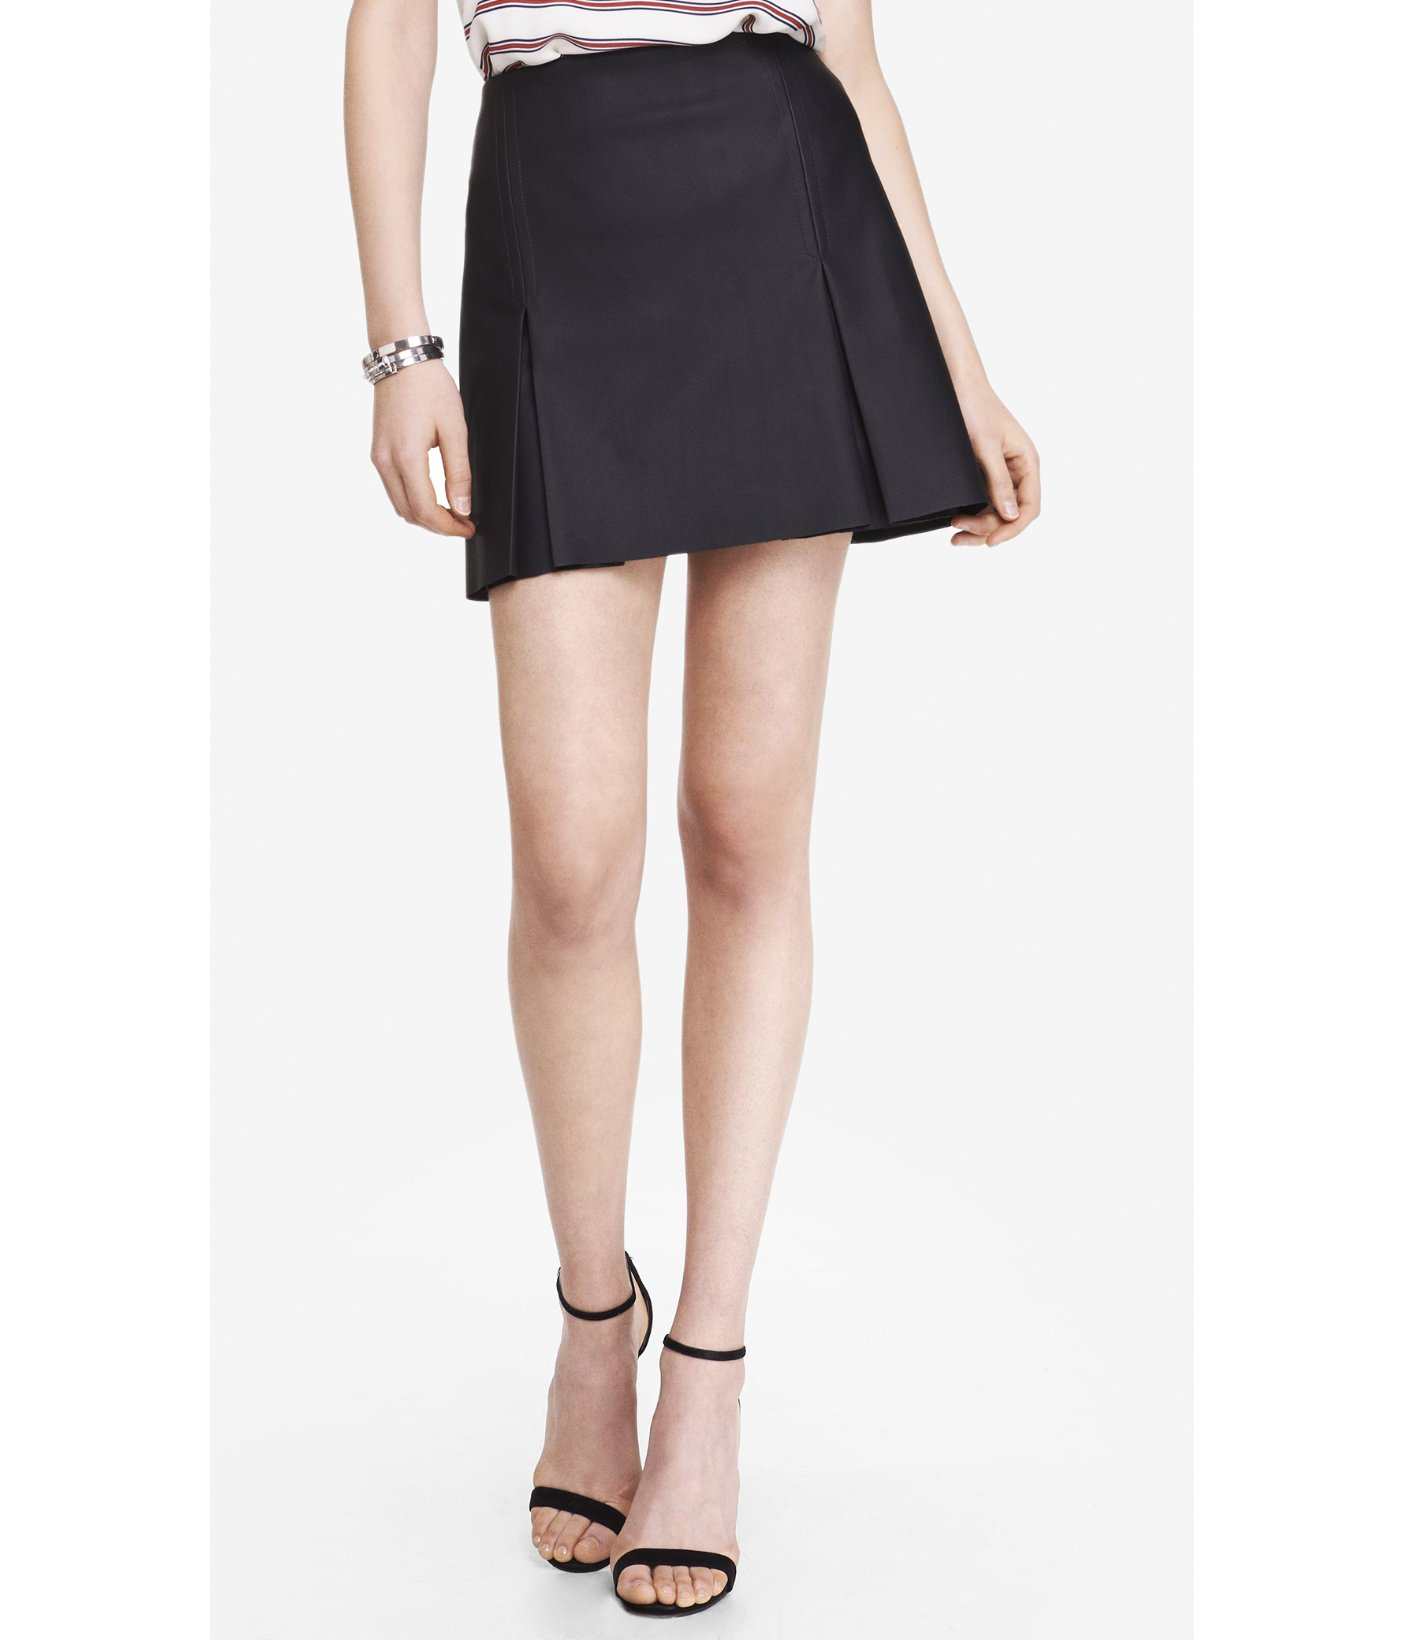 Express A-Line (Minus The) Leather Pleated Mini Skirt in Black | Lyst